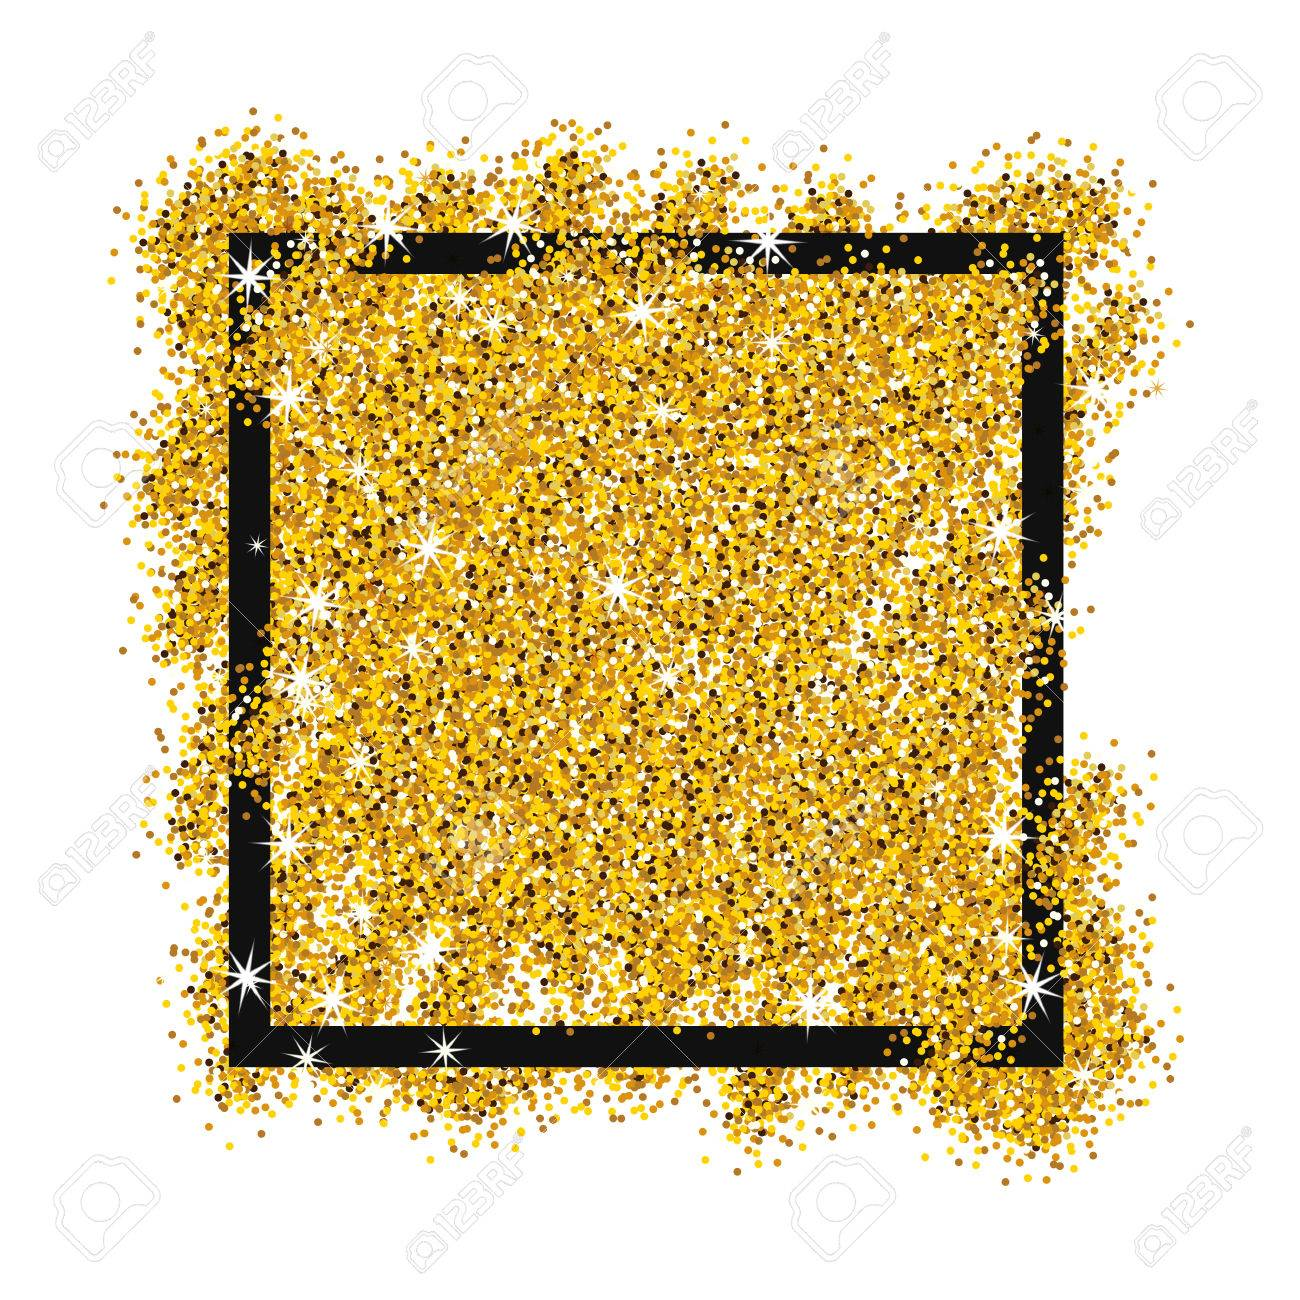 Gold Sparkles On White Background In Black Frame Gold Glitter